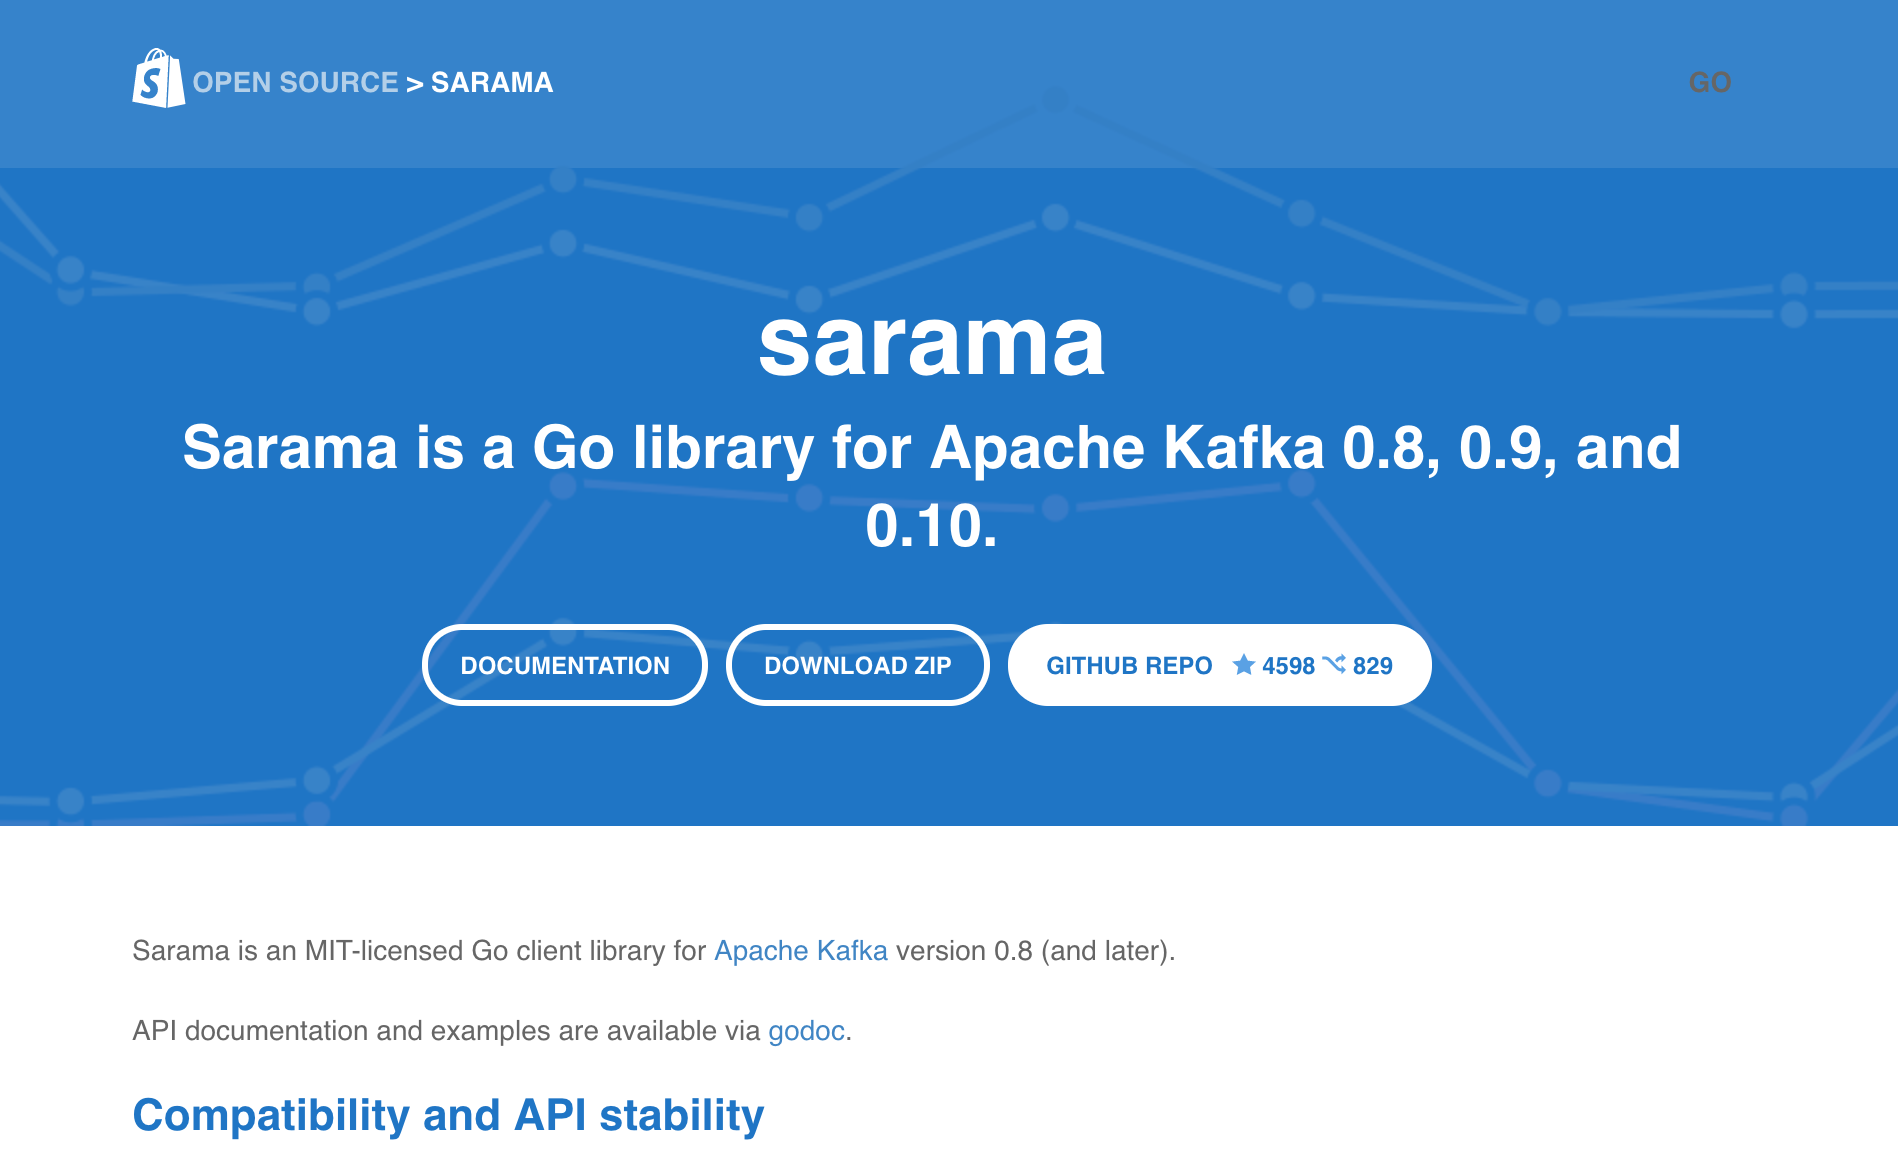 Sarama Go library for Apache Kafka